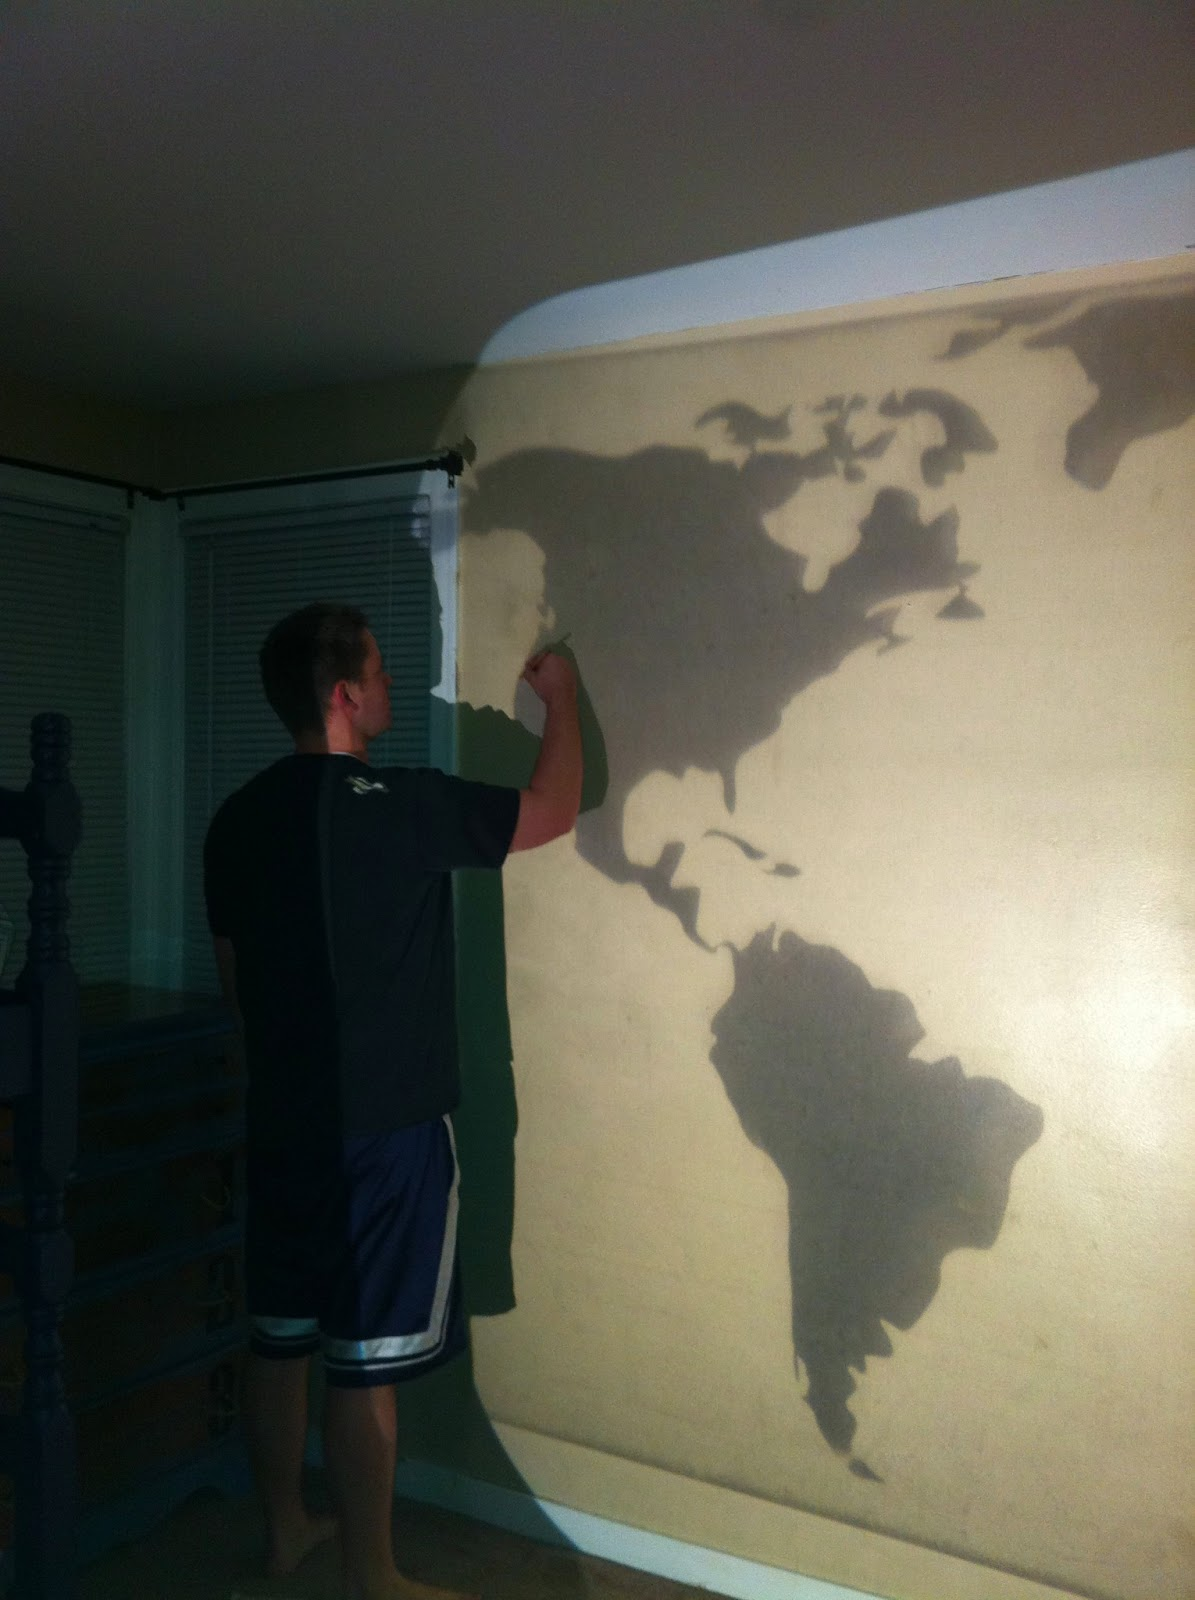 Diy world map wall mural classy clutter for Diy photo wall mural